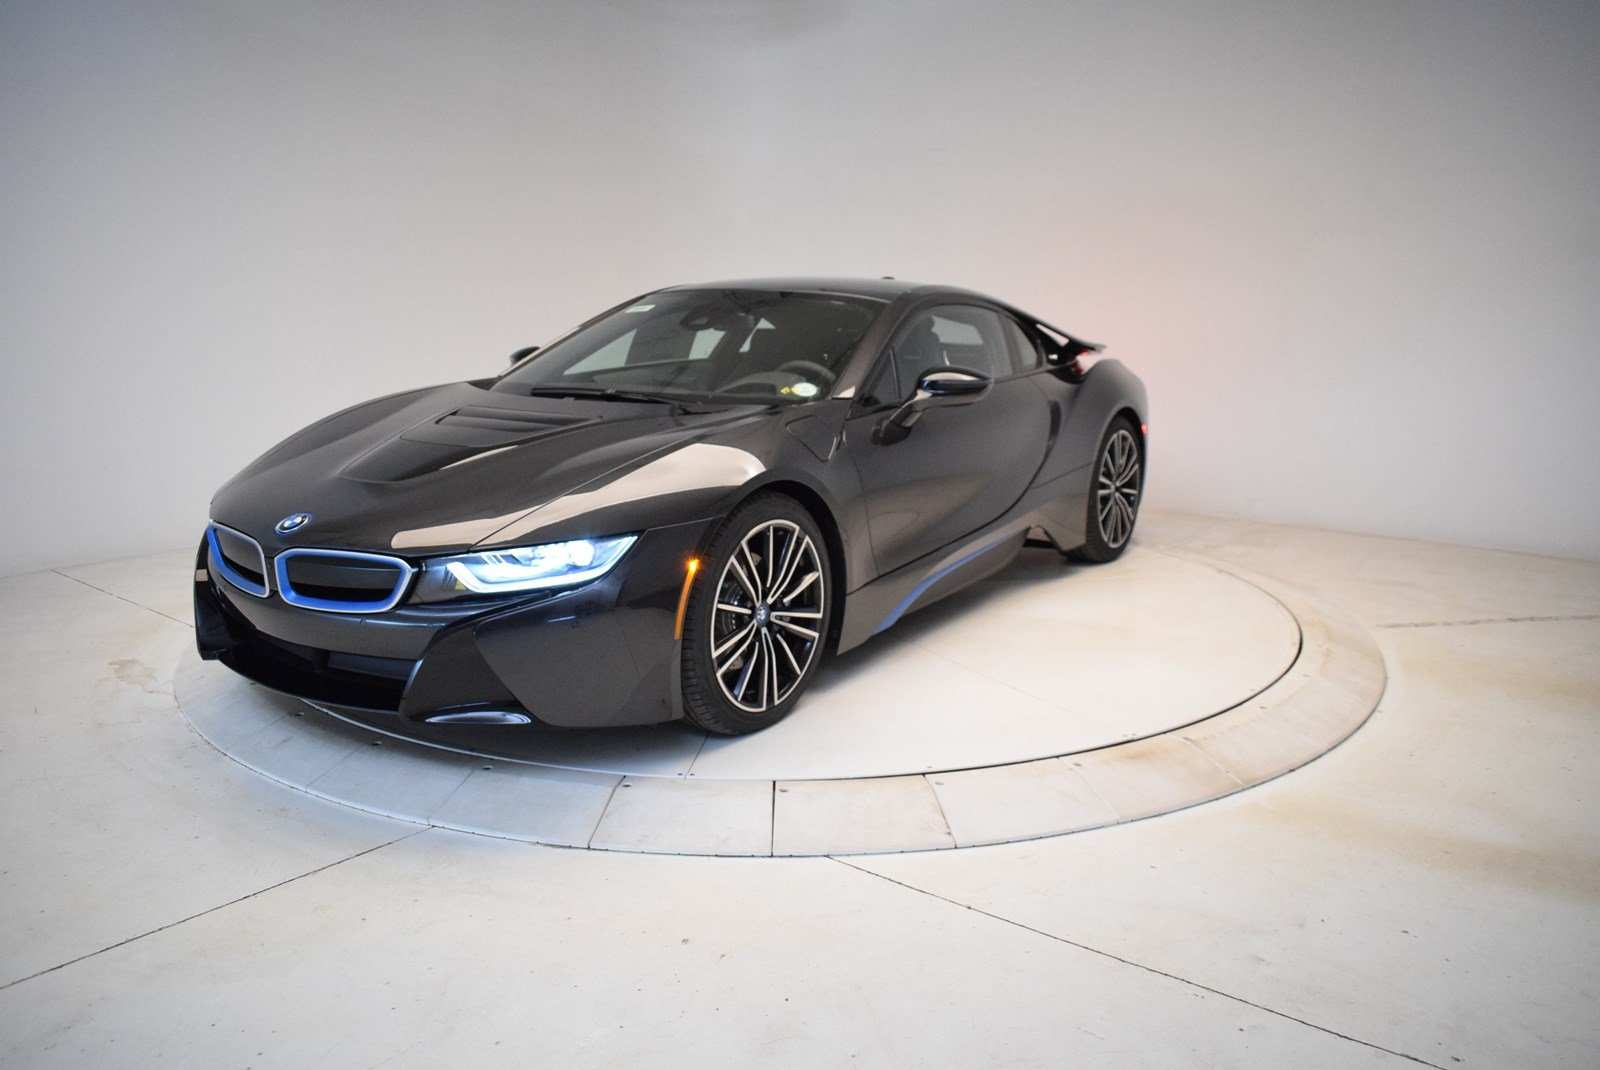 22 Concept of 2019 Bmw Coupe Performance and New Engine with 2019 Bmw Coupe